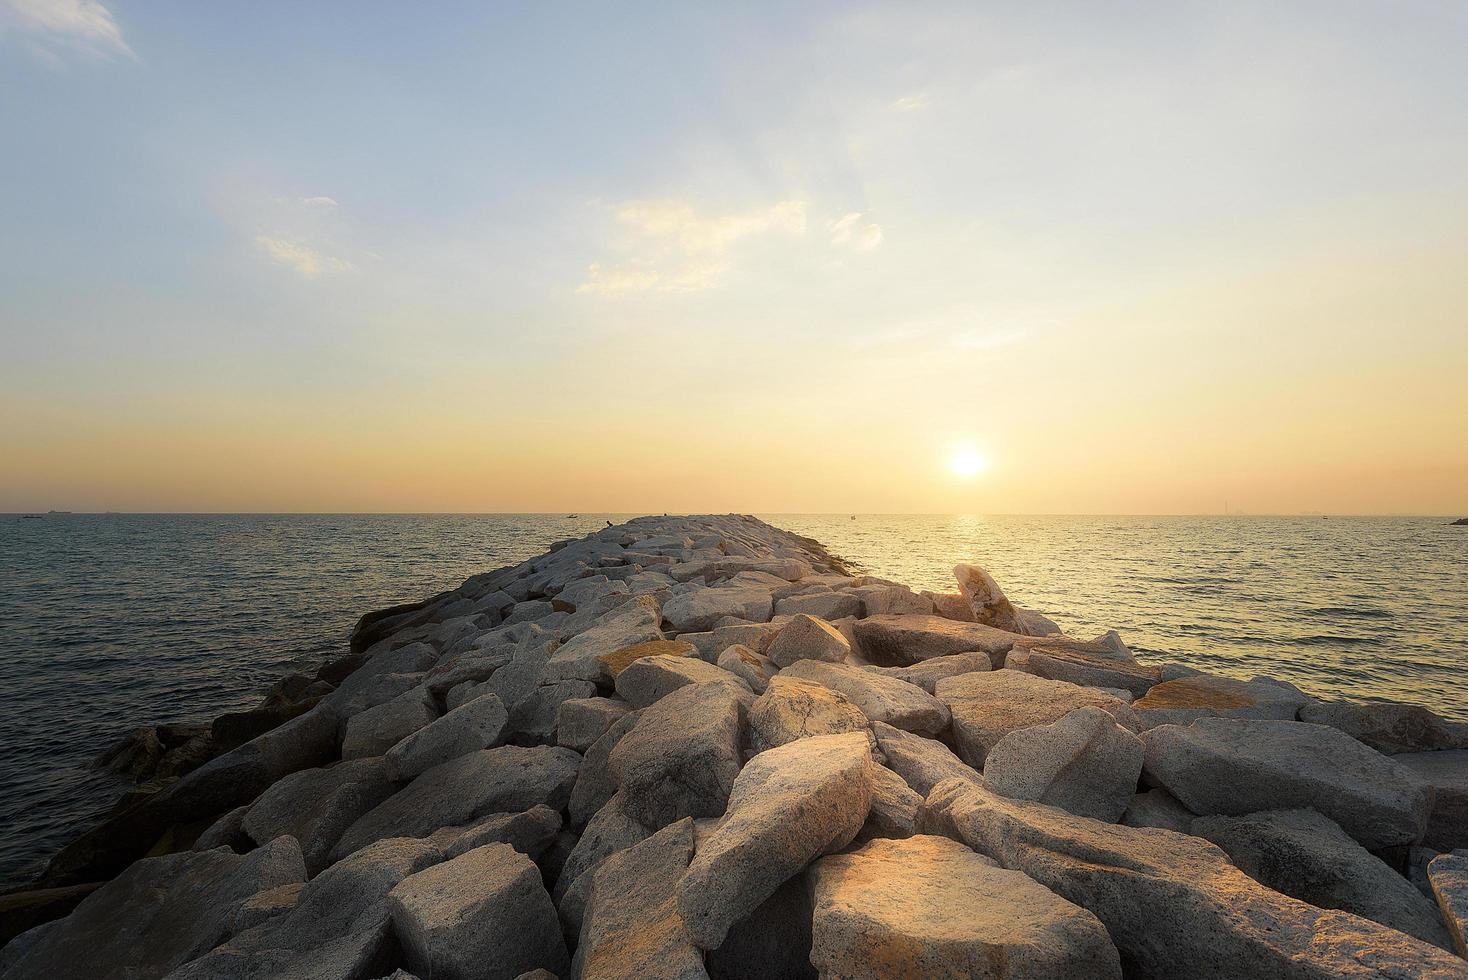 Sunset on the rocky shore of a tropical beach photo